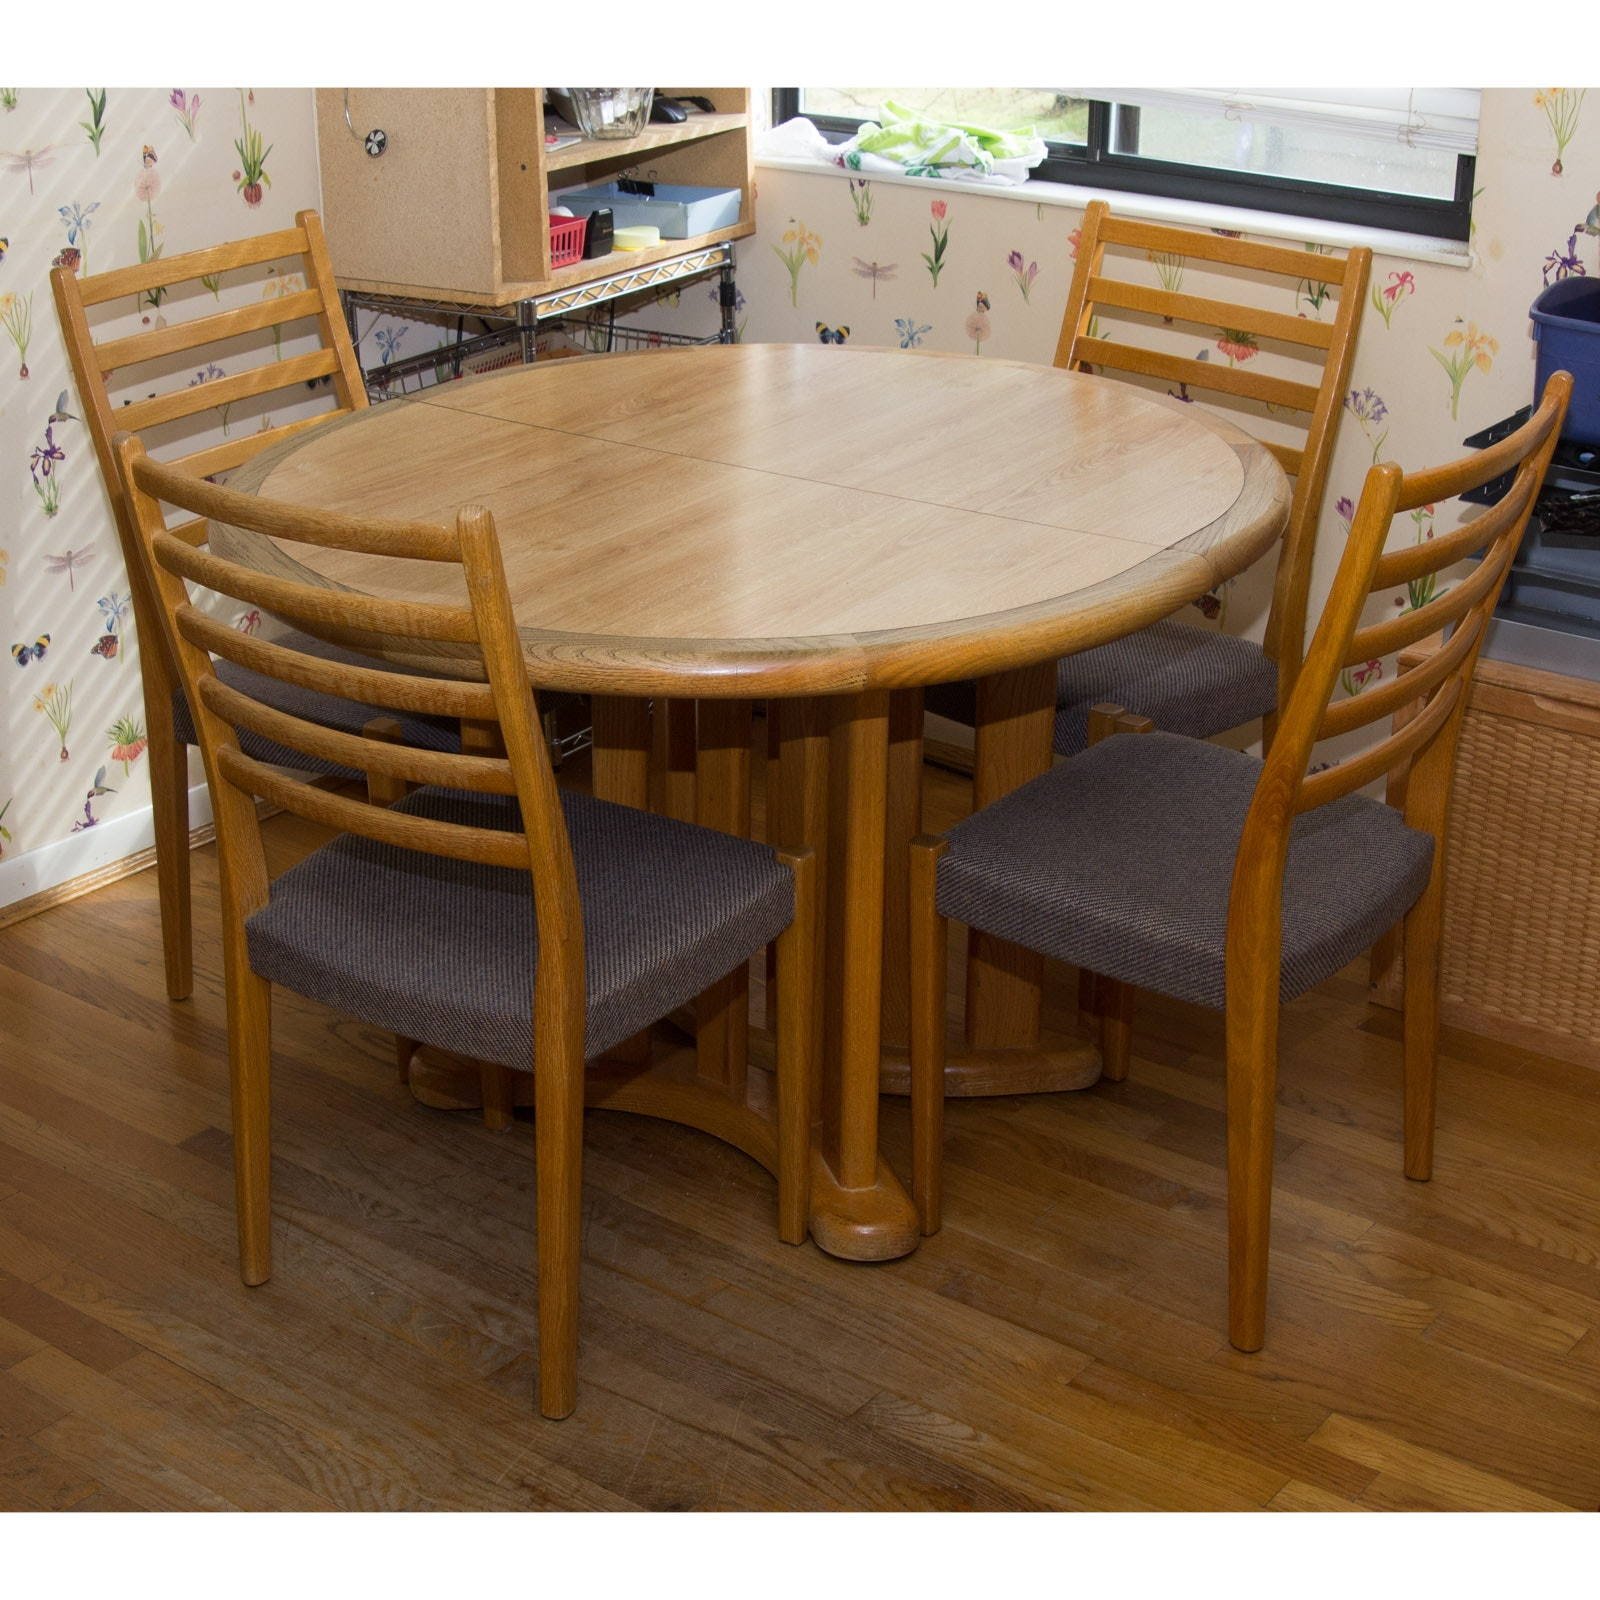 Circular Dining Table and Four Chairs